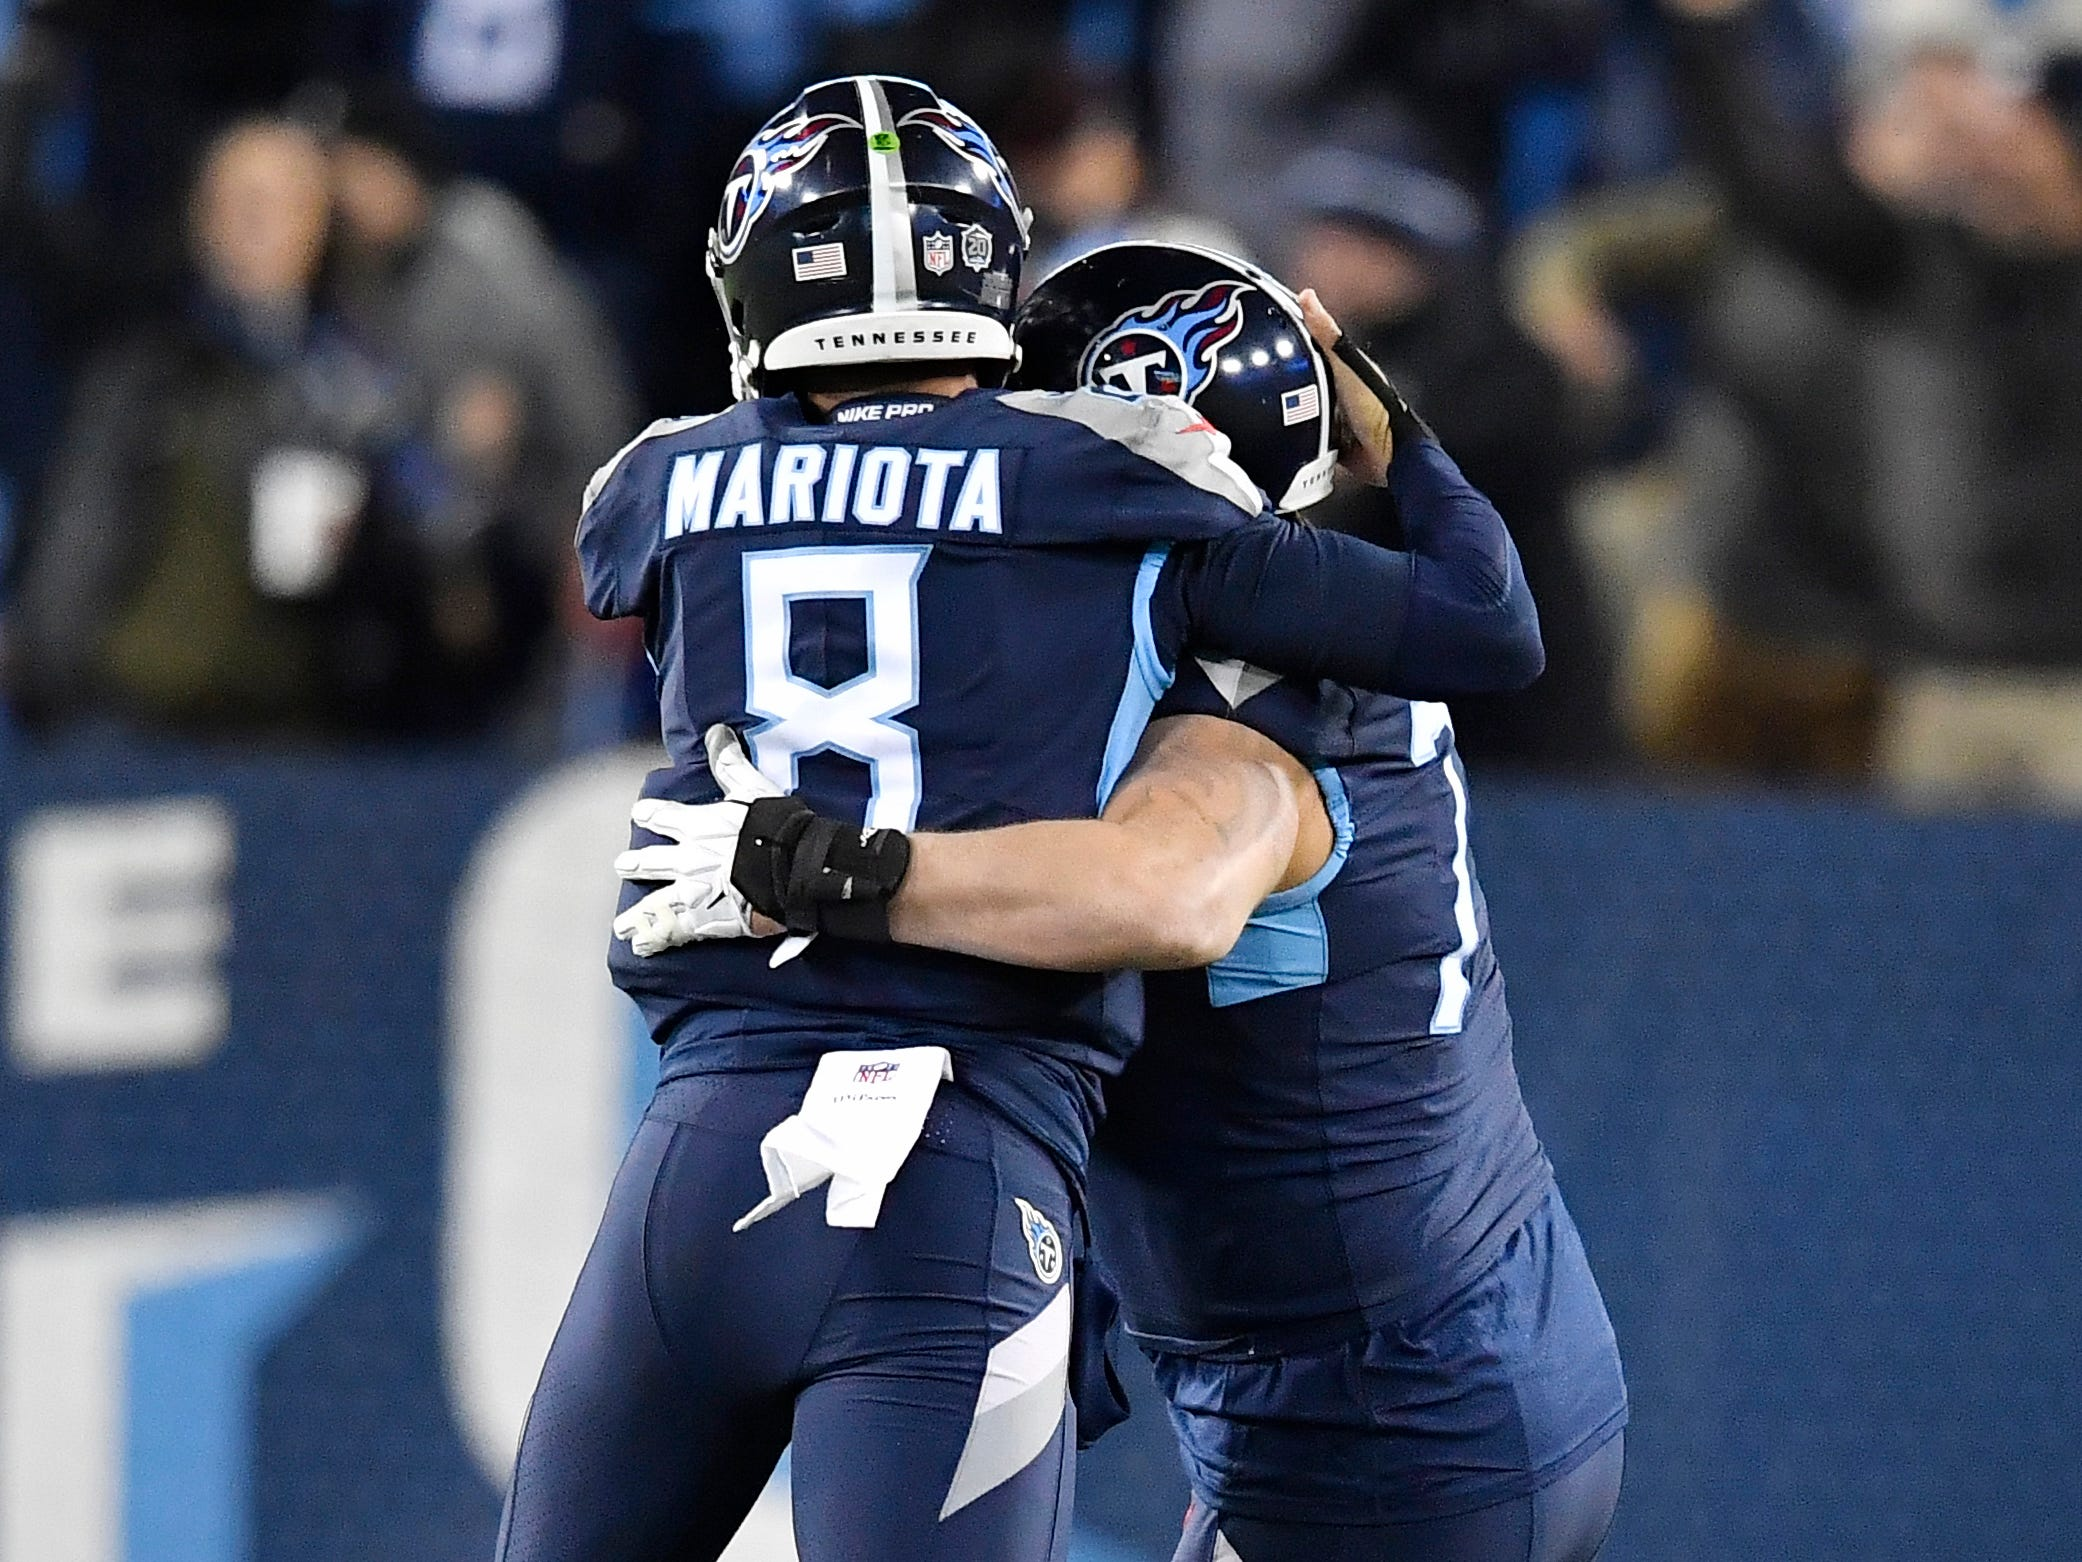 Titans quarterback Marcus Mariota (8) celebrates Derrick Henry's 99-yard touchdown with offensive tackle Taylor Lewan (77) in the second quarter at Nissan Stadium Thursday, Dec. 6, 2018, in Nashville, Tenn.